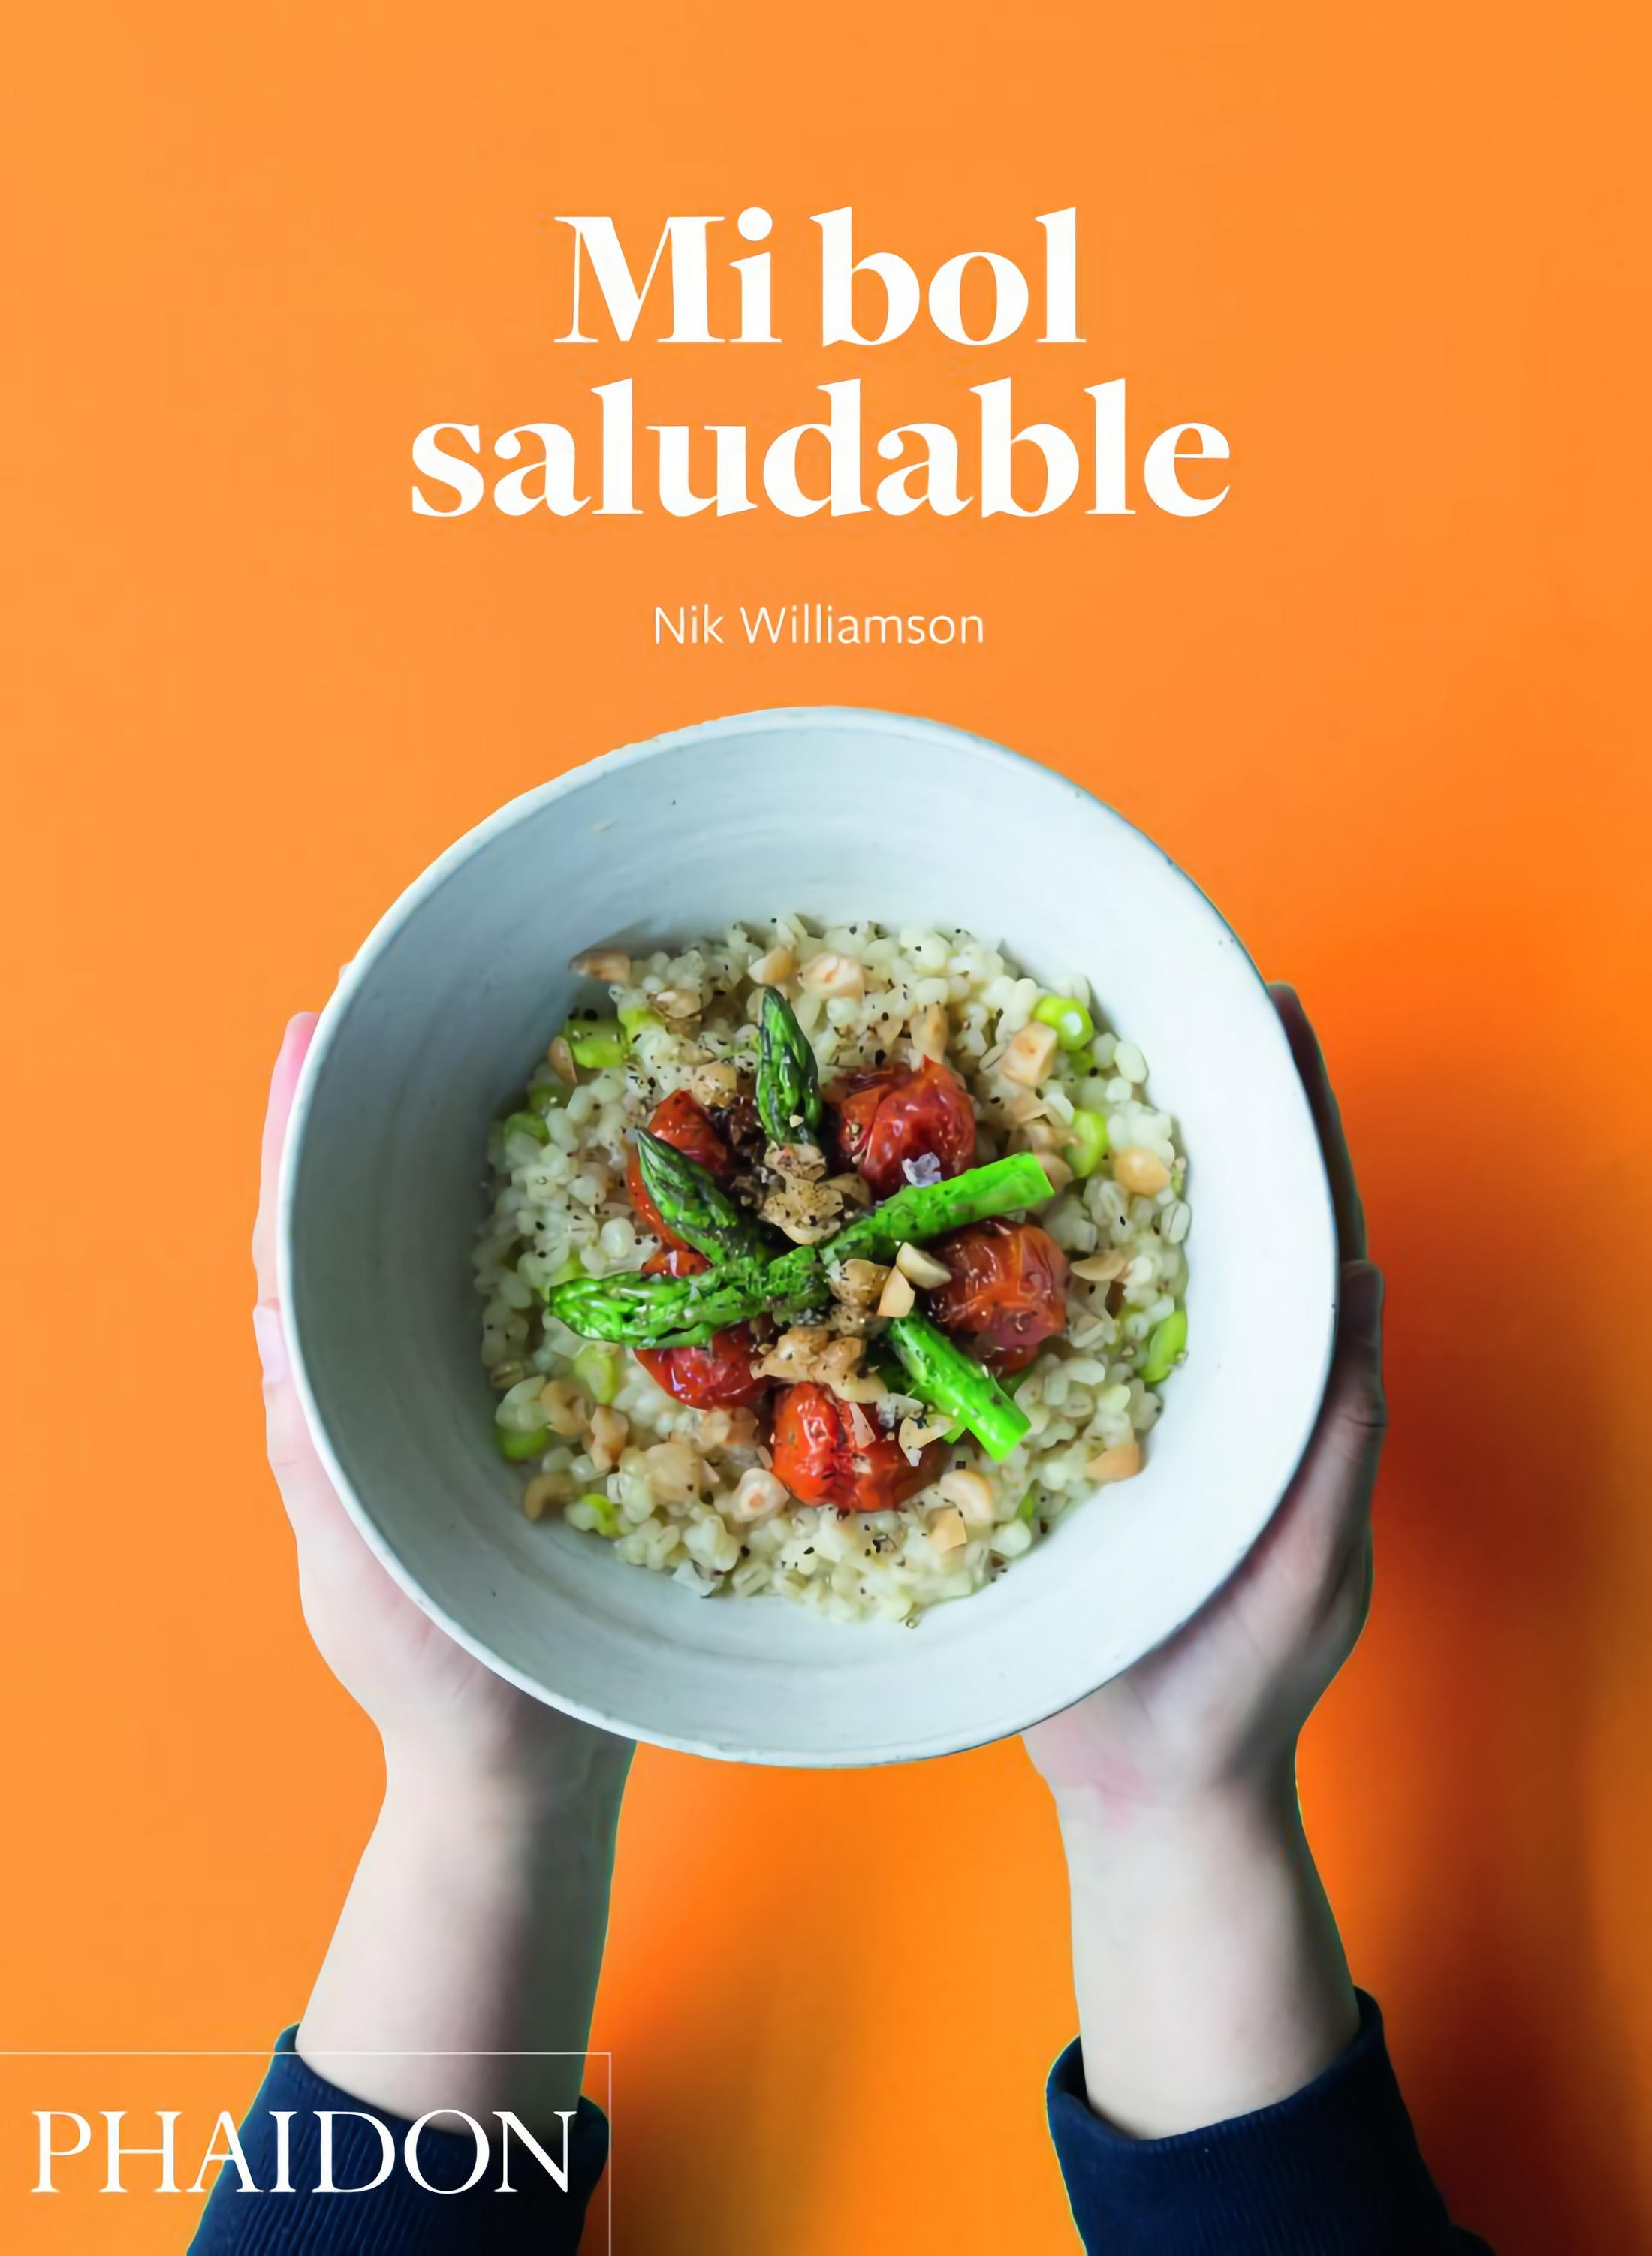 Mi bol saludable de Nik Williamson